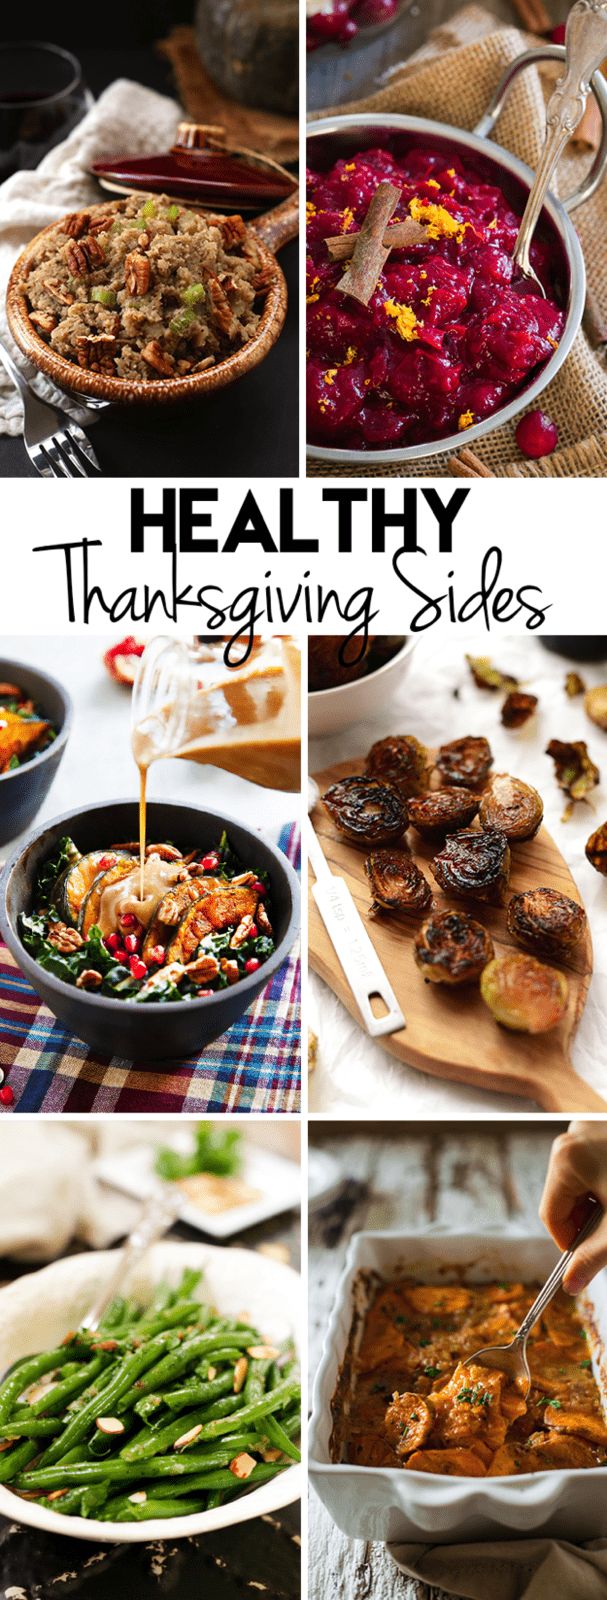 Healthy Thanksgiving Sides #vegan #glutenfree #paleo